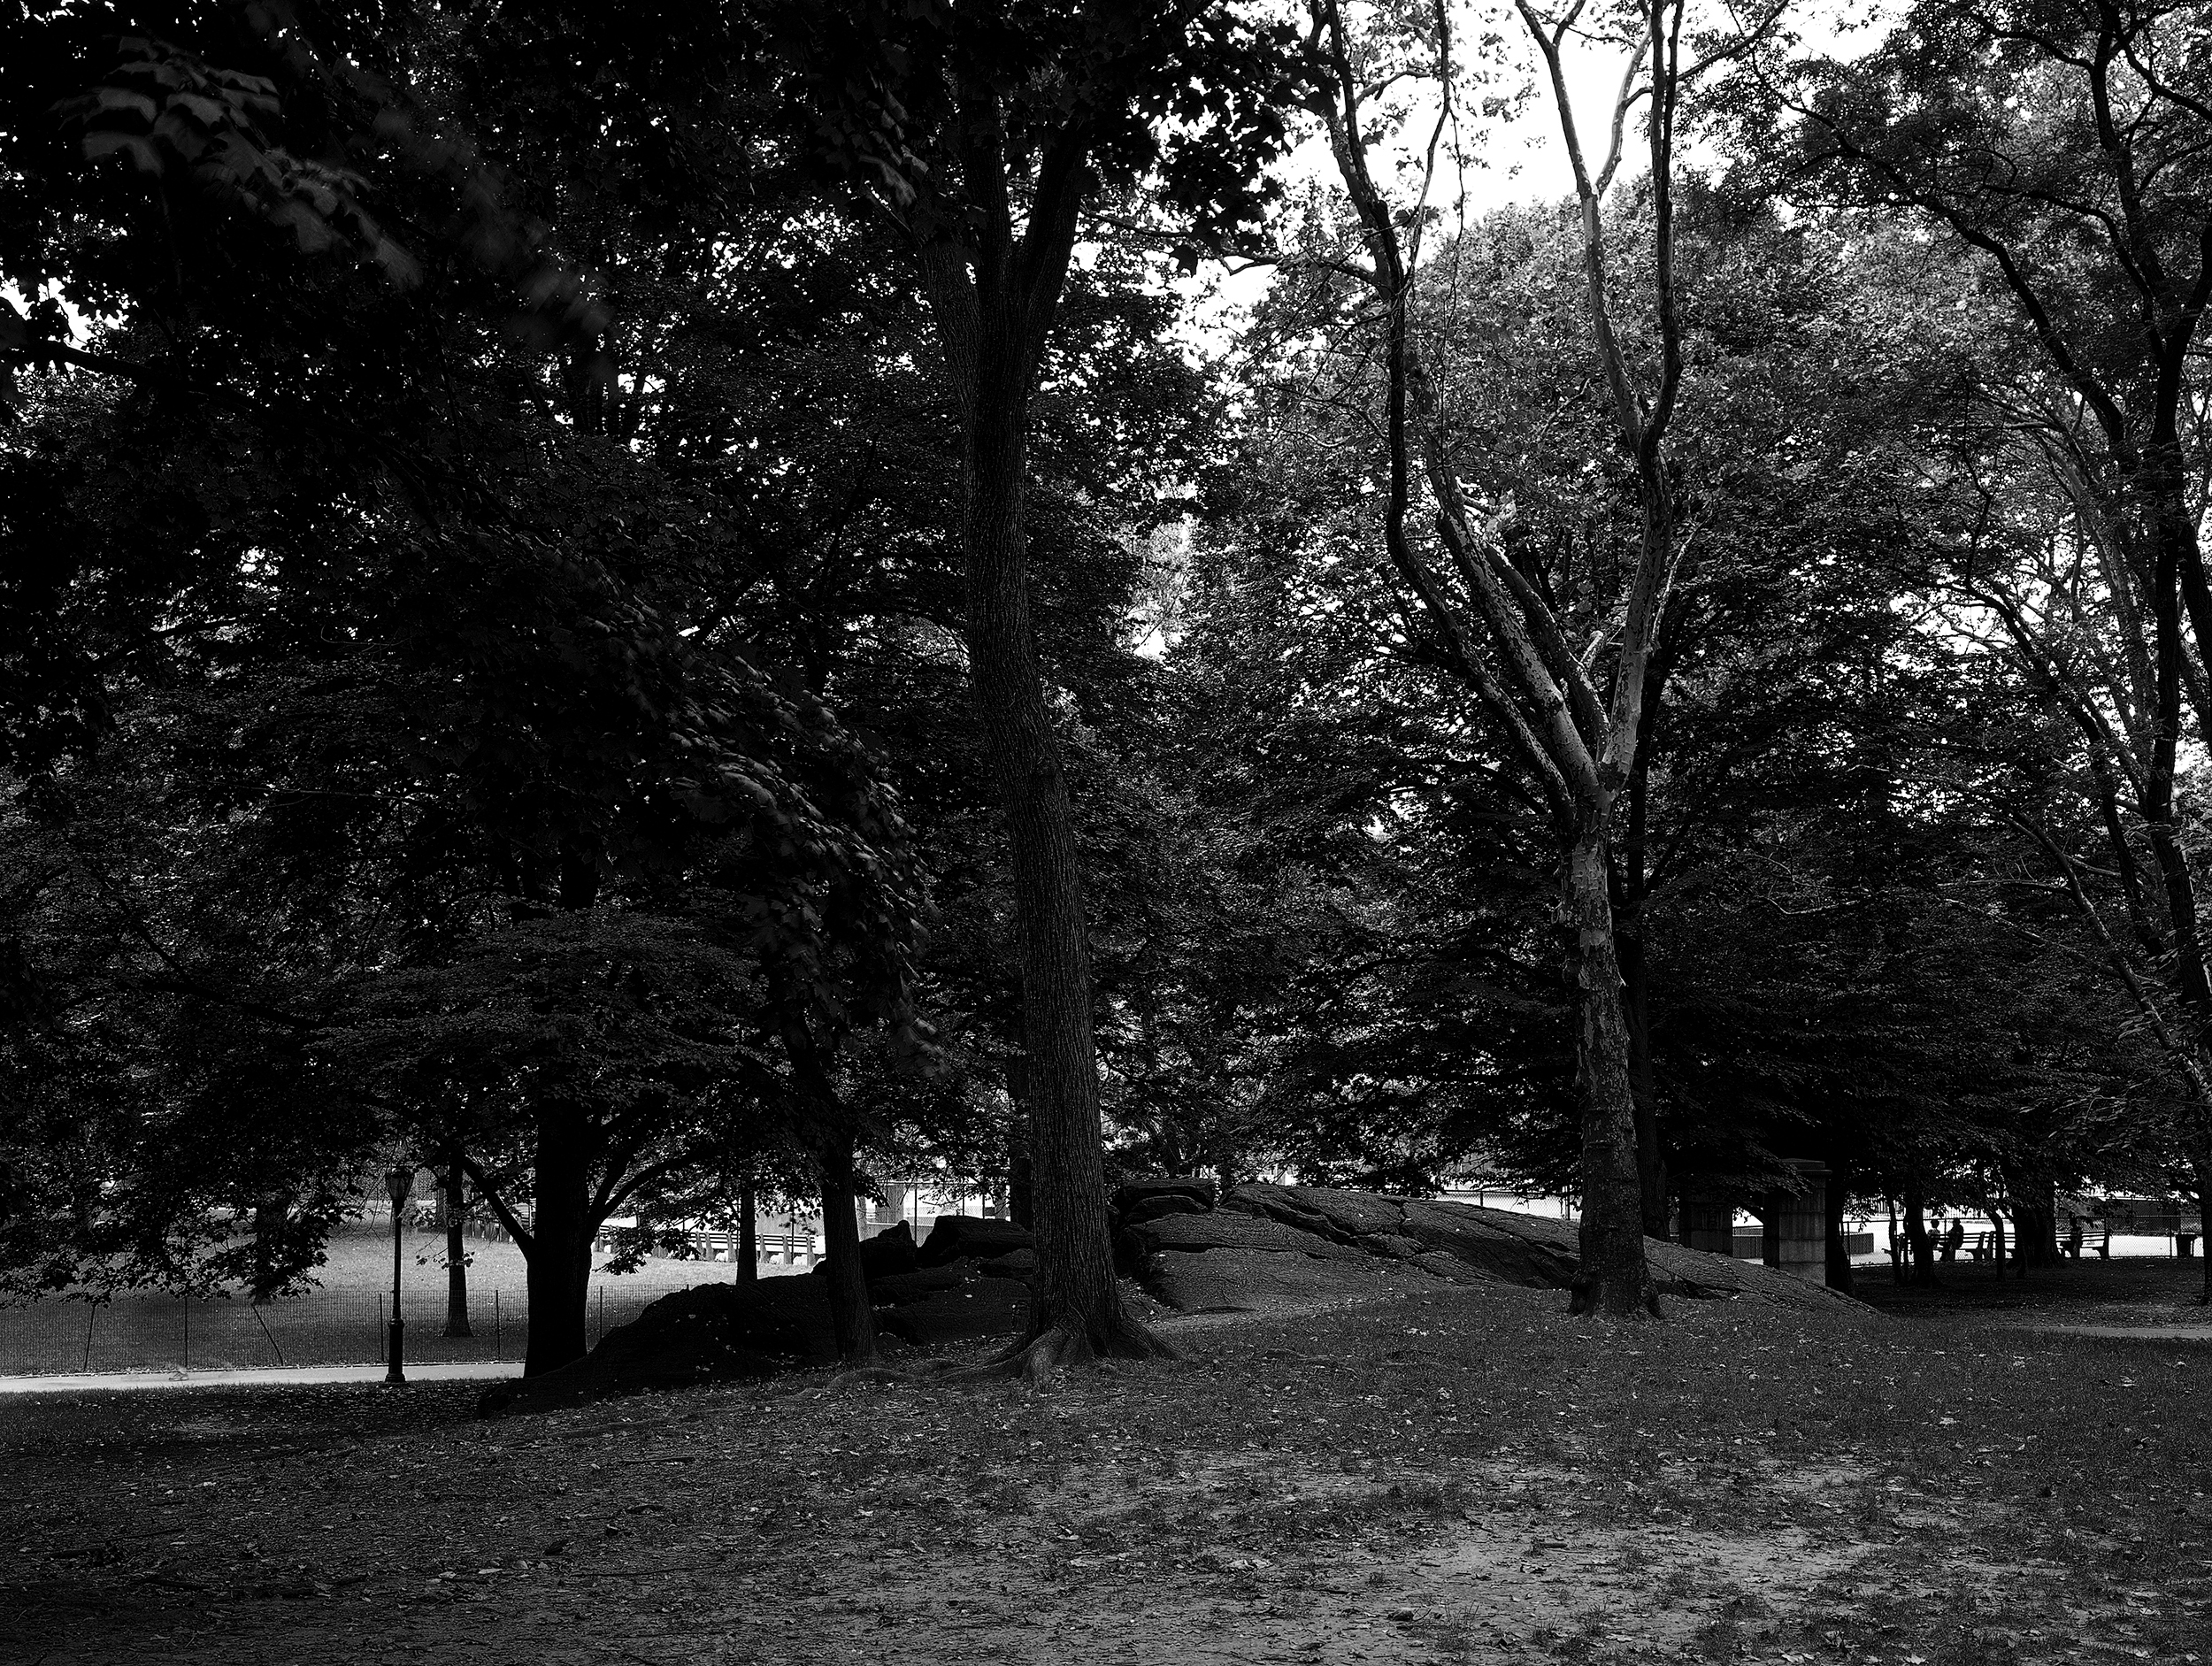 Trees at Central Park New York 2000.jpg